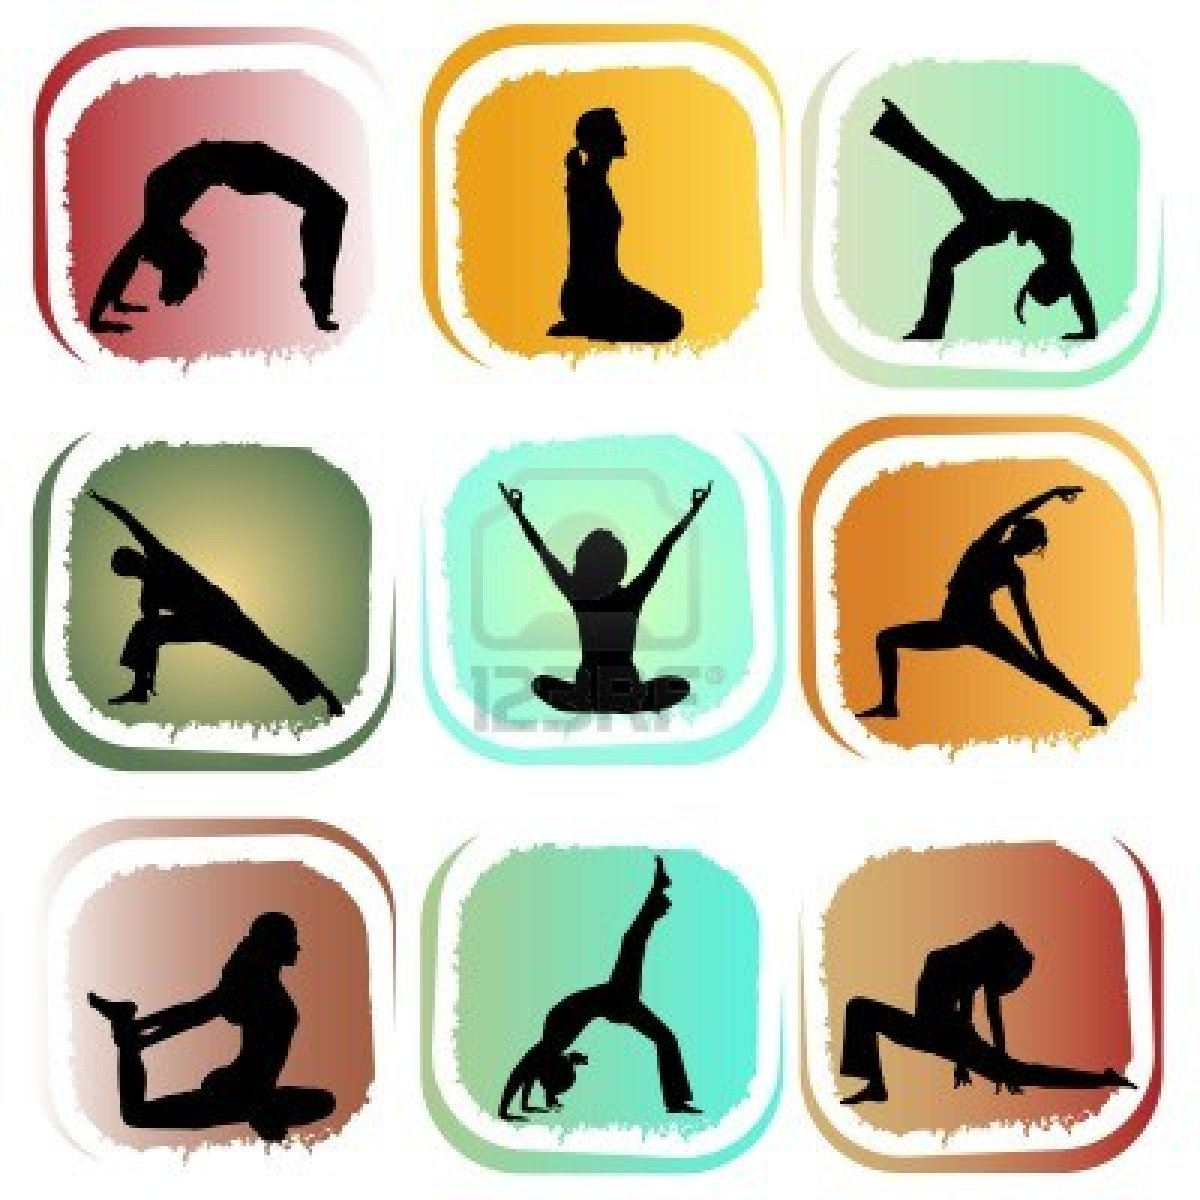 yoga positions  Stock Photo - 10330662